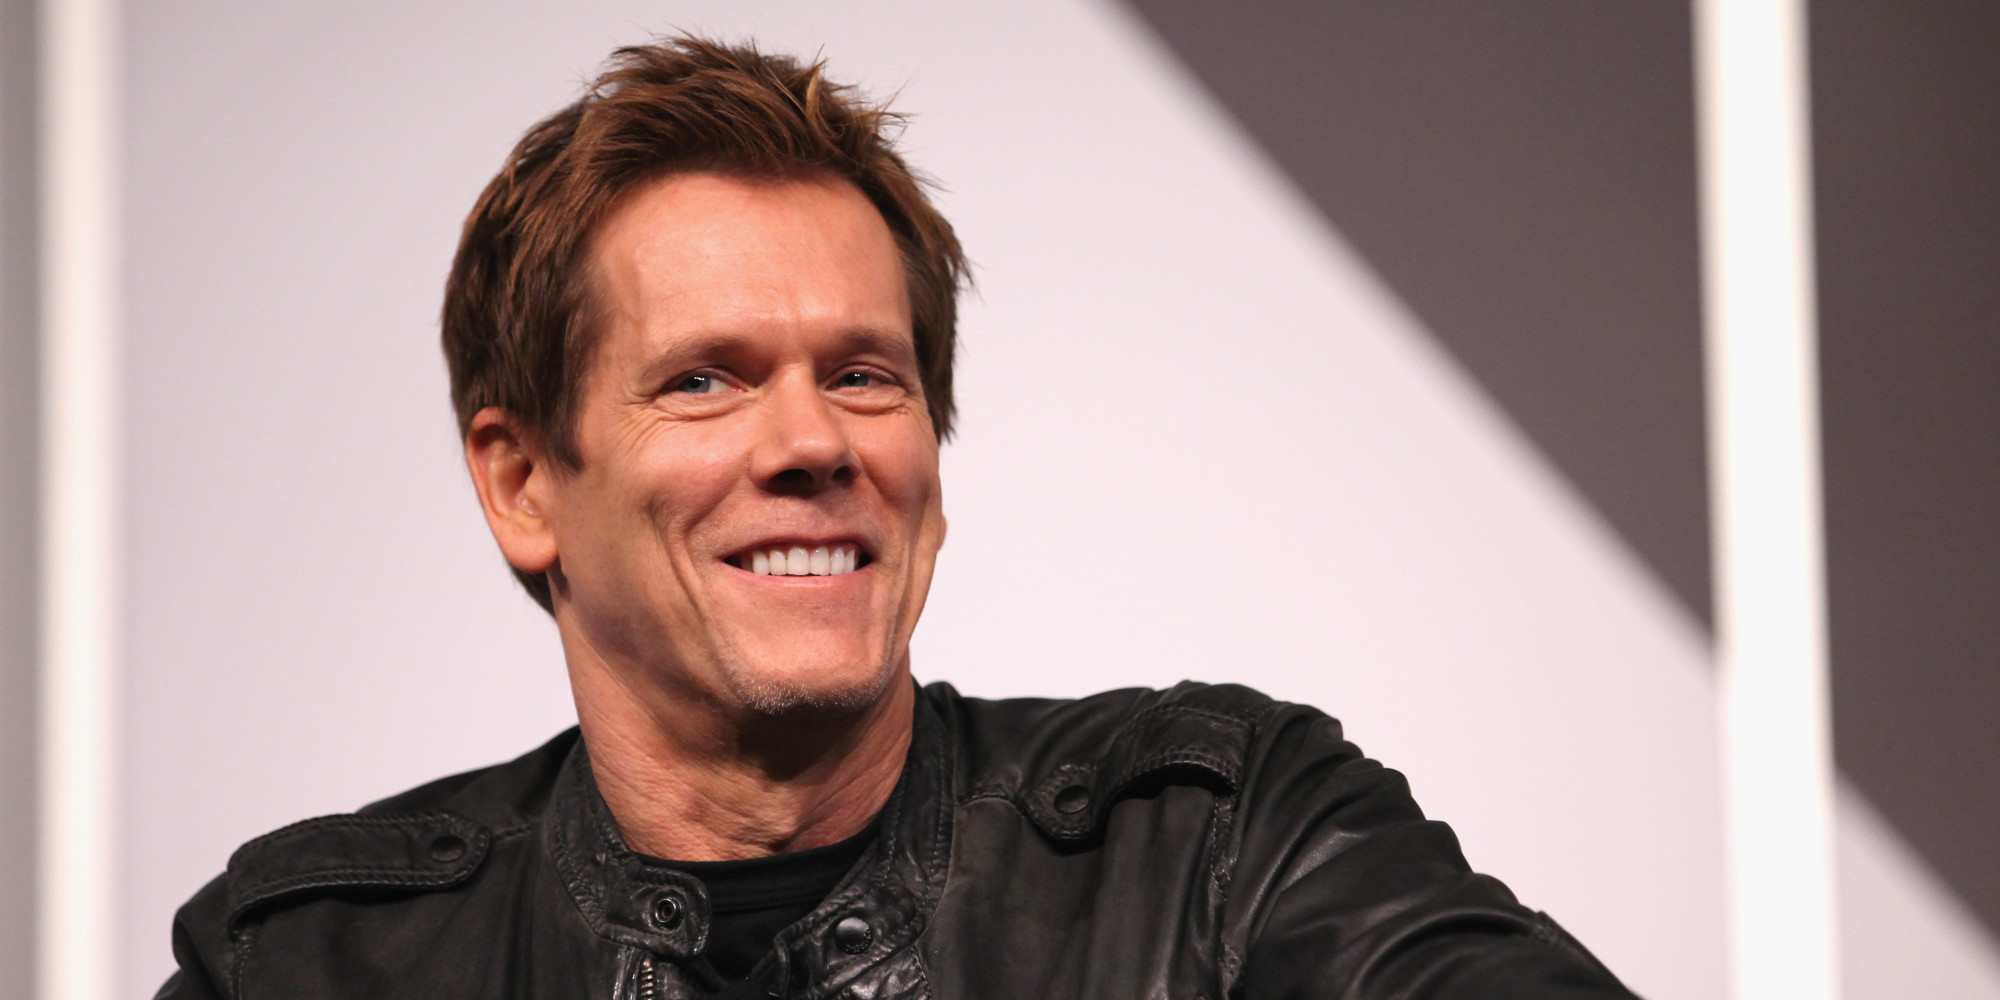 Kevin Bacon looks like Jim Carrey warning you cant unsee it 2000x1000